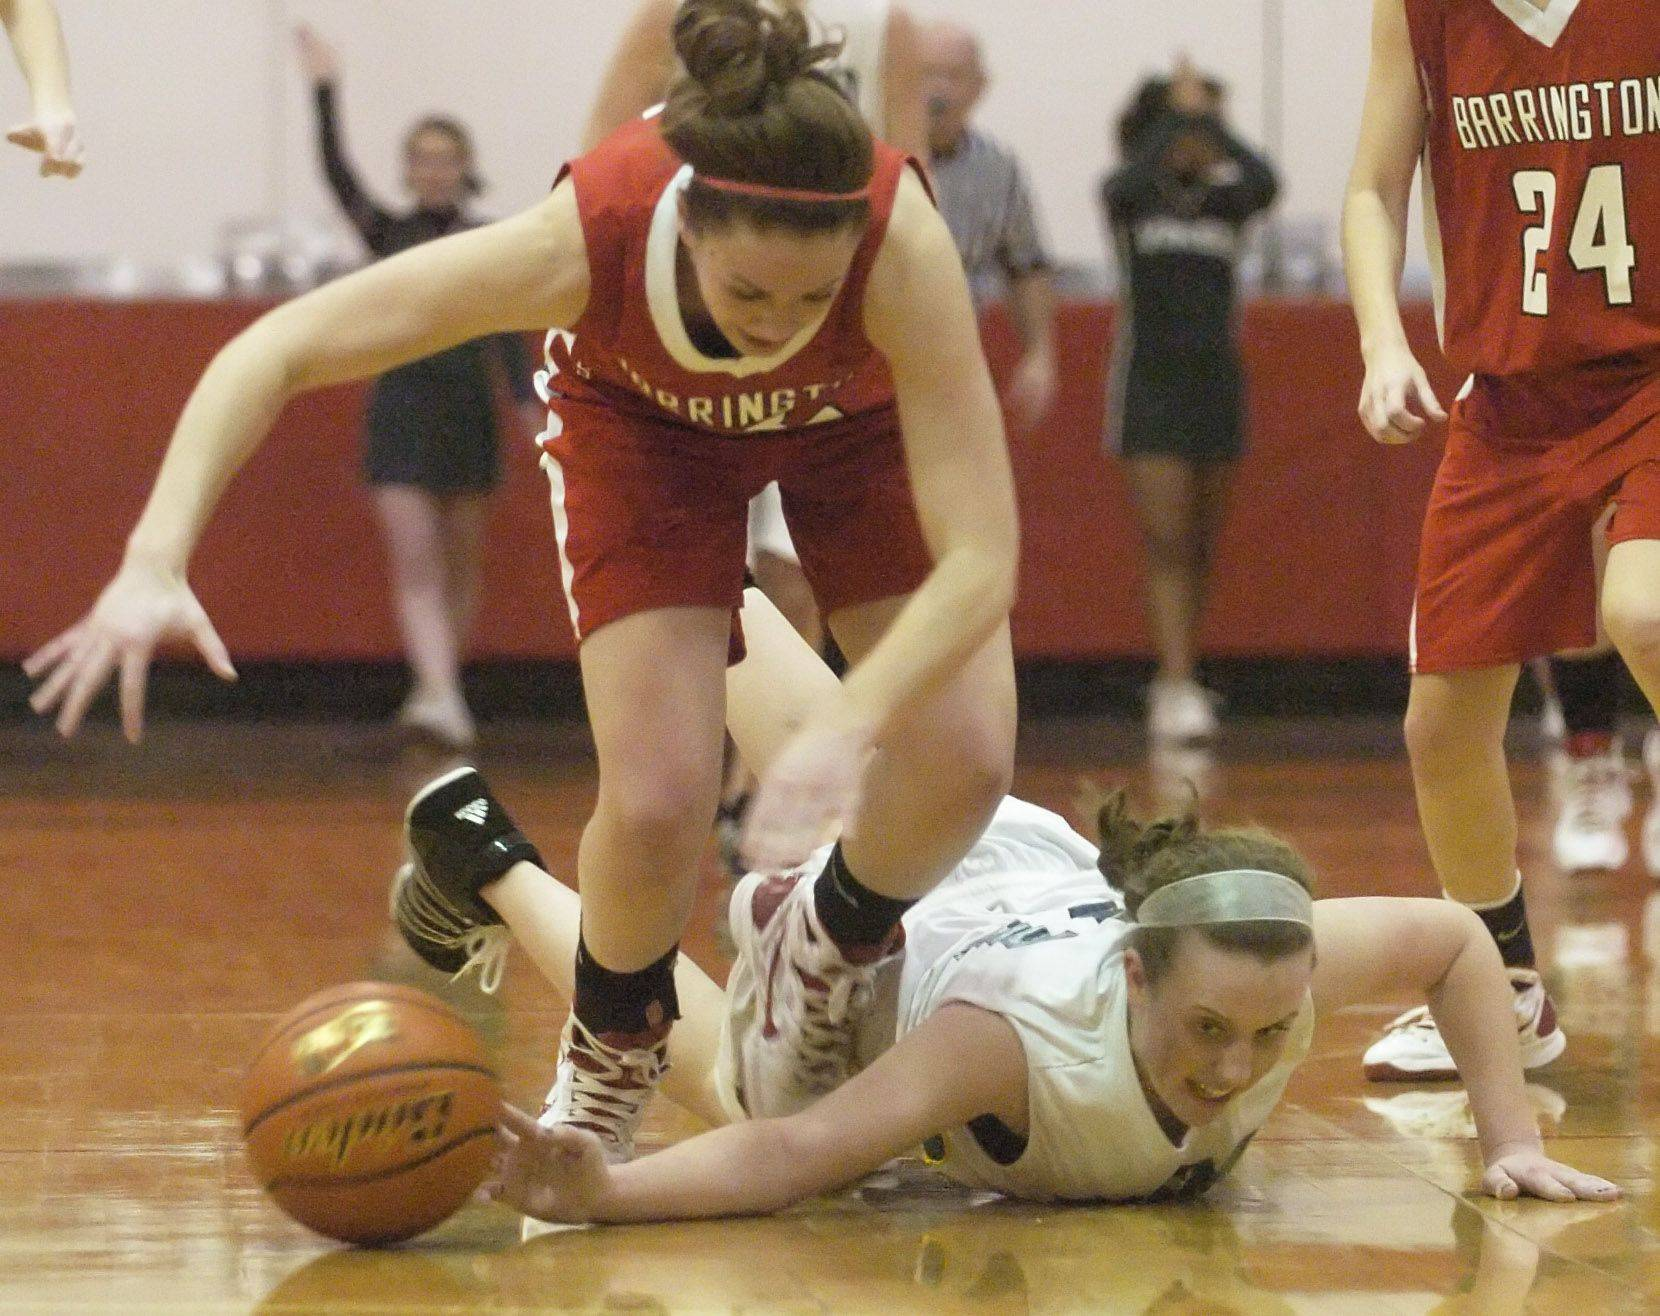 Fremd's Sarah Power, right, dives to knock a loose ball away from Barrington's Sarah Mass during the sectional semifinal at Mundelein Tuesday.